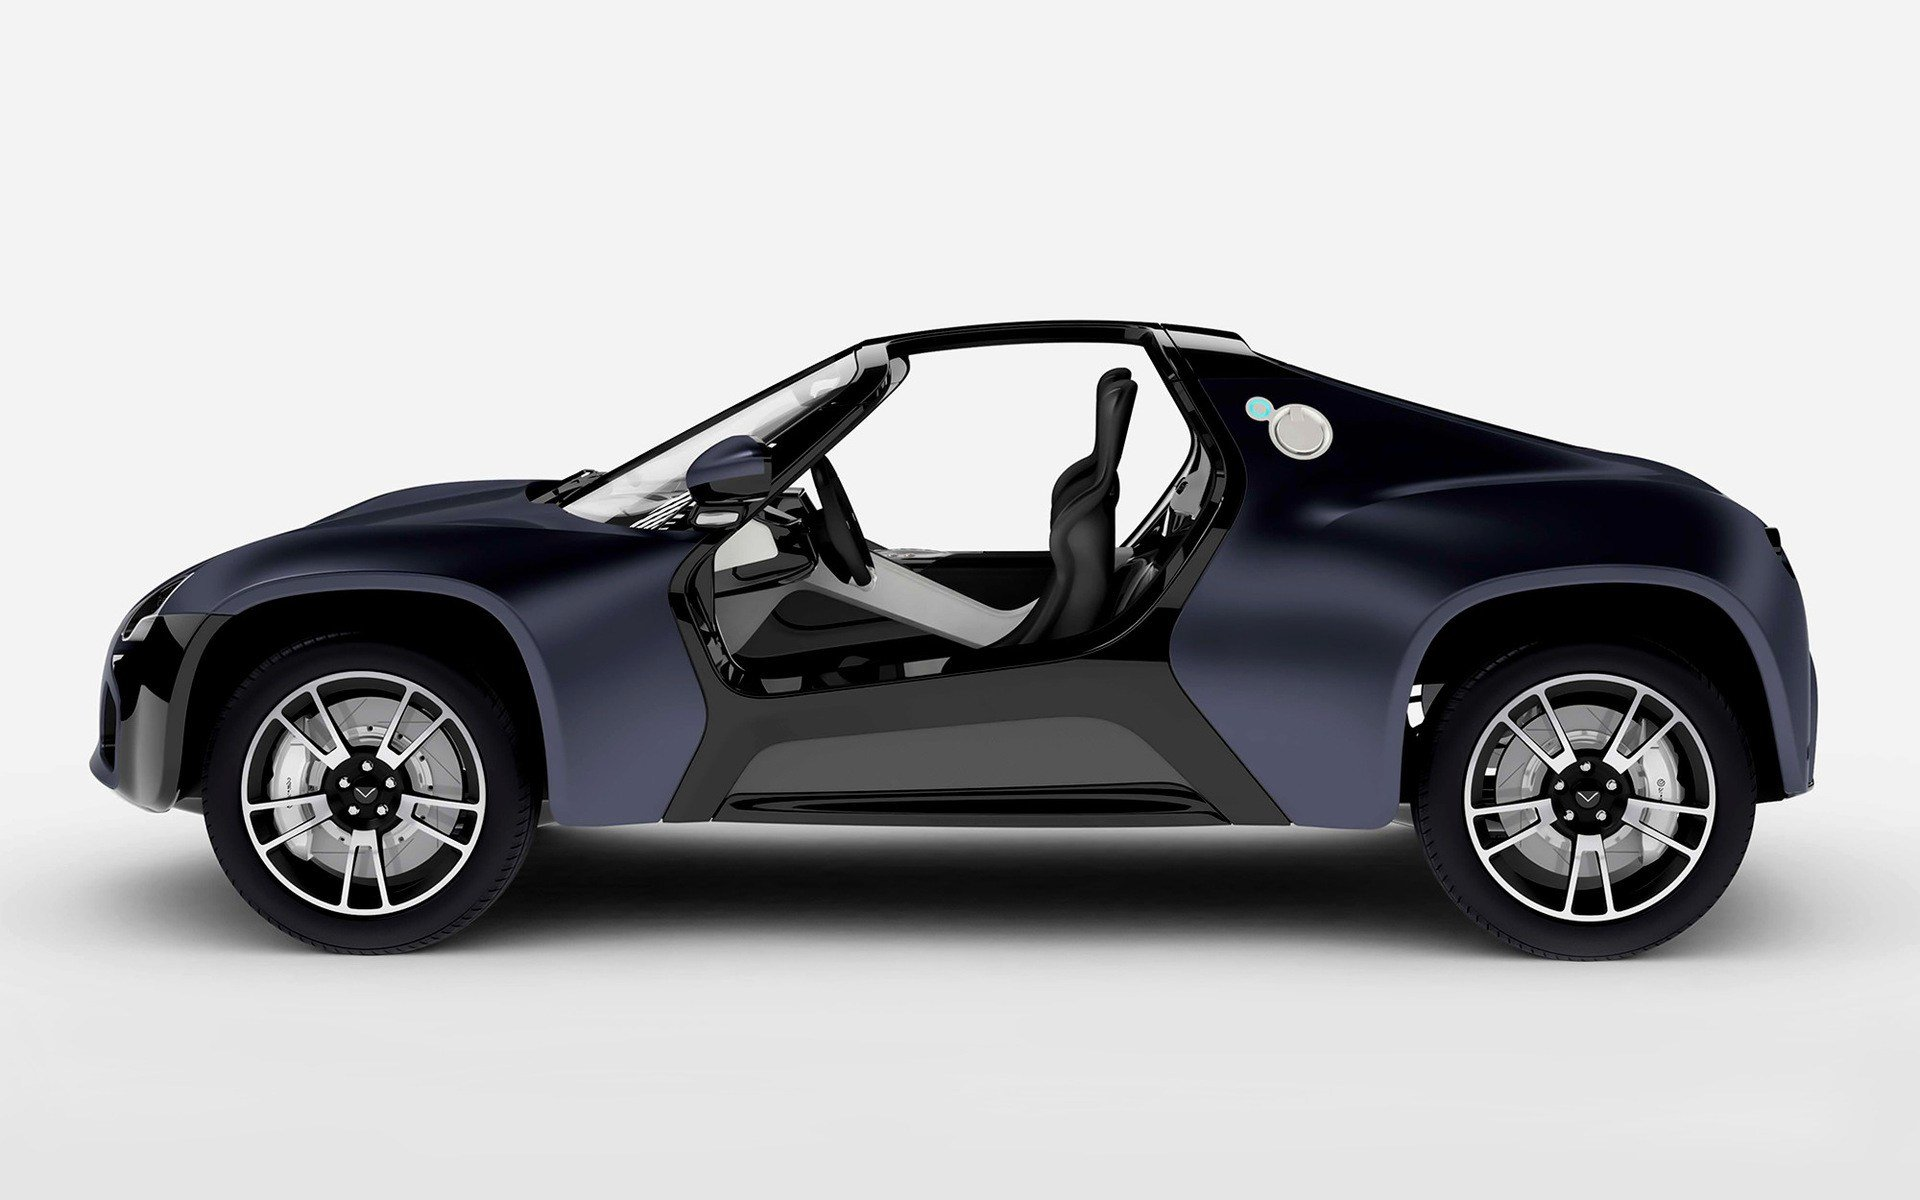 New 2010 Venturi America Concept Wallpapers And Hd Images On This Month